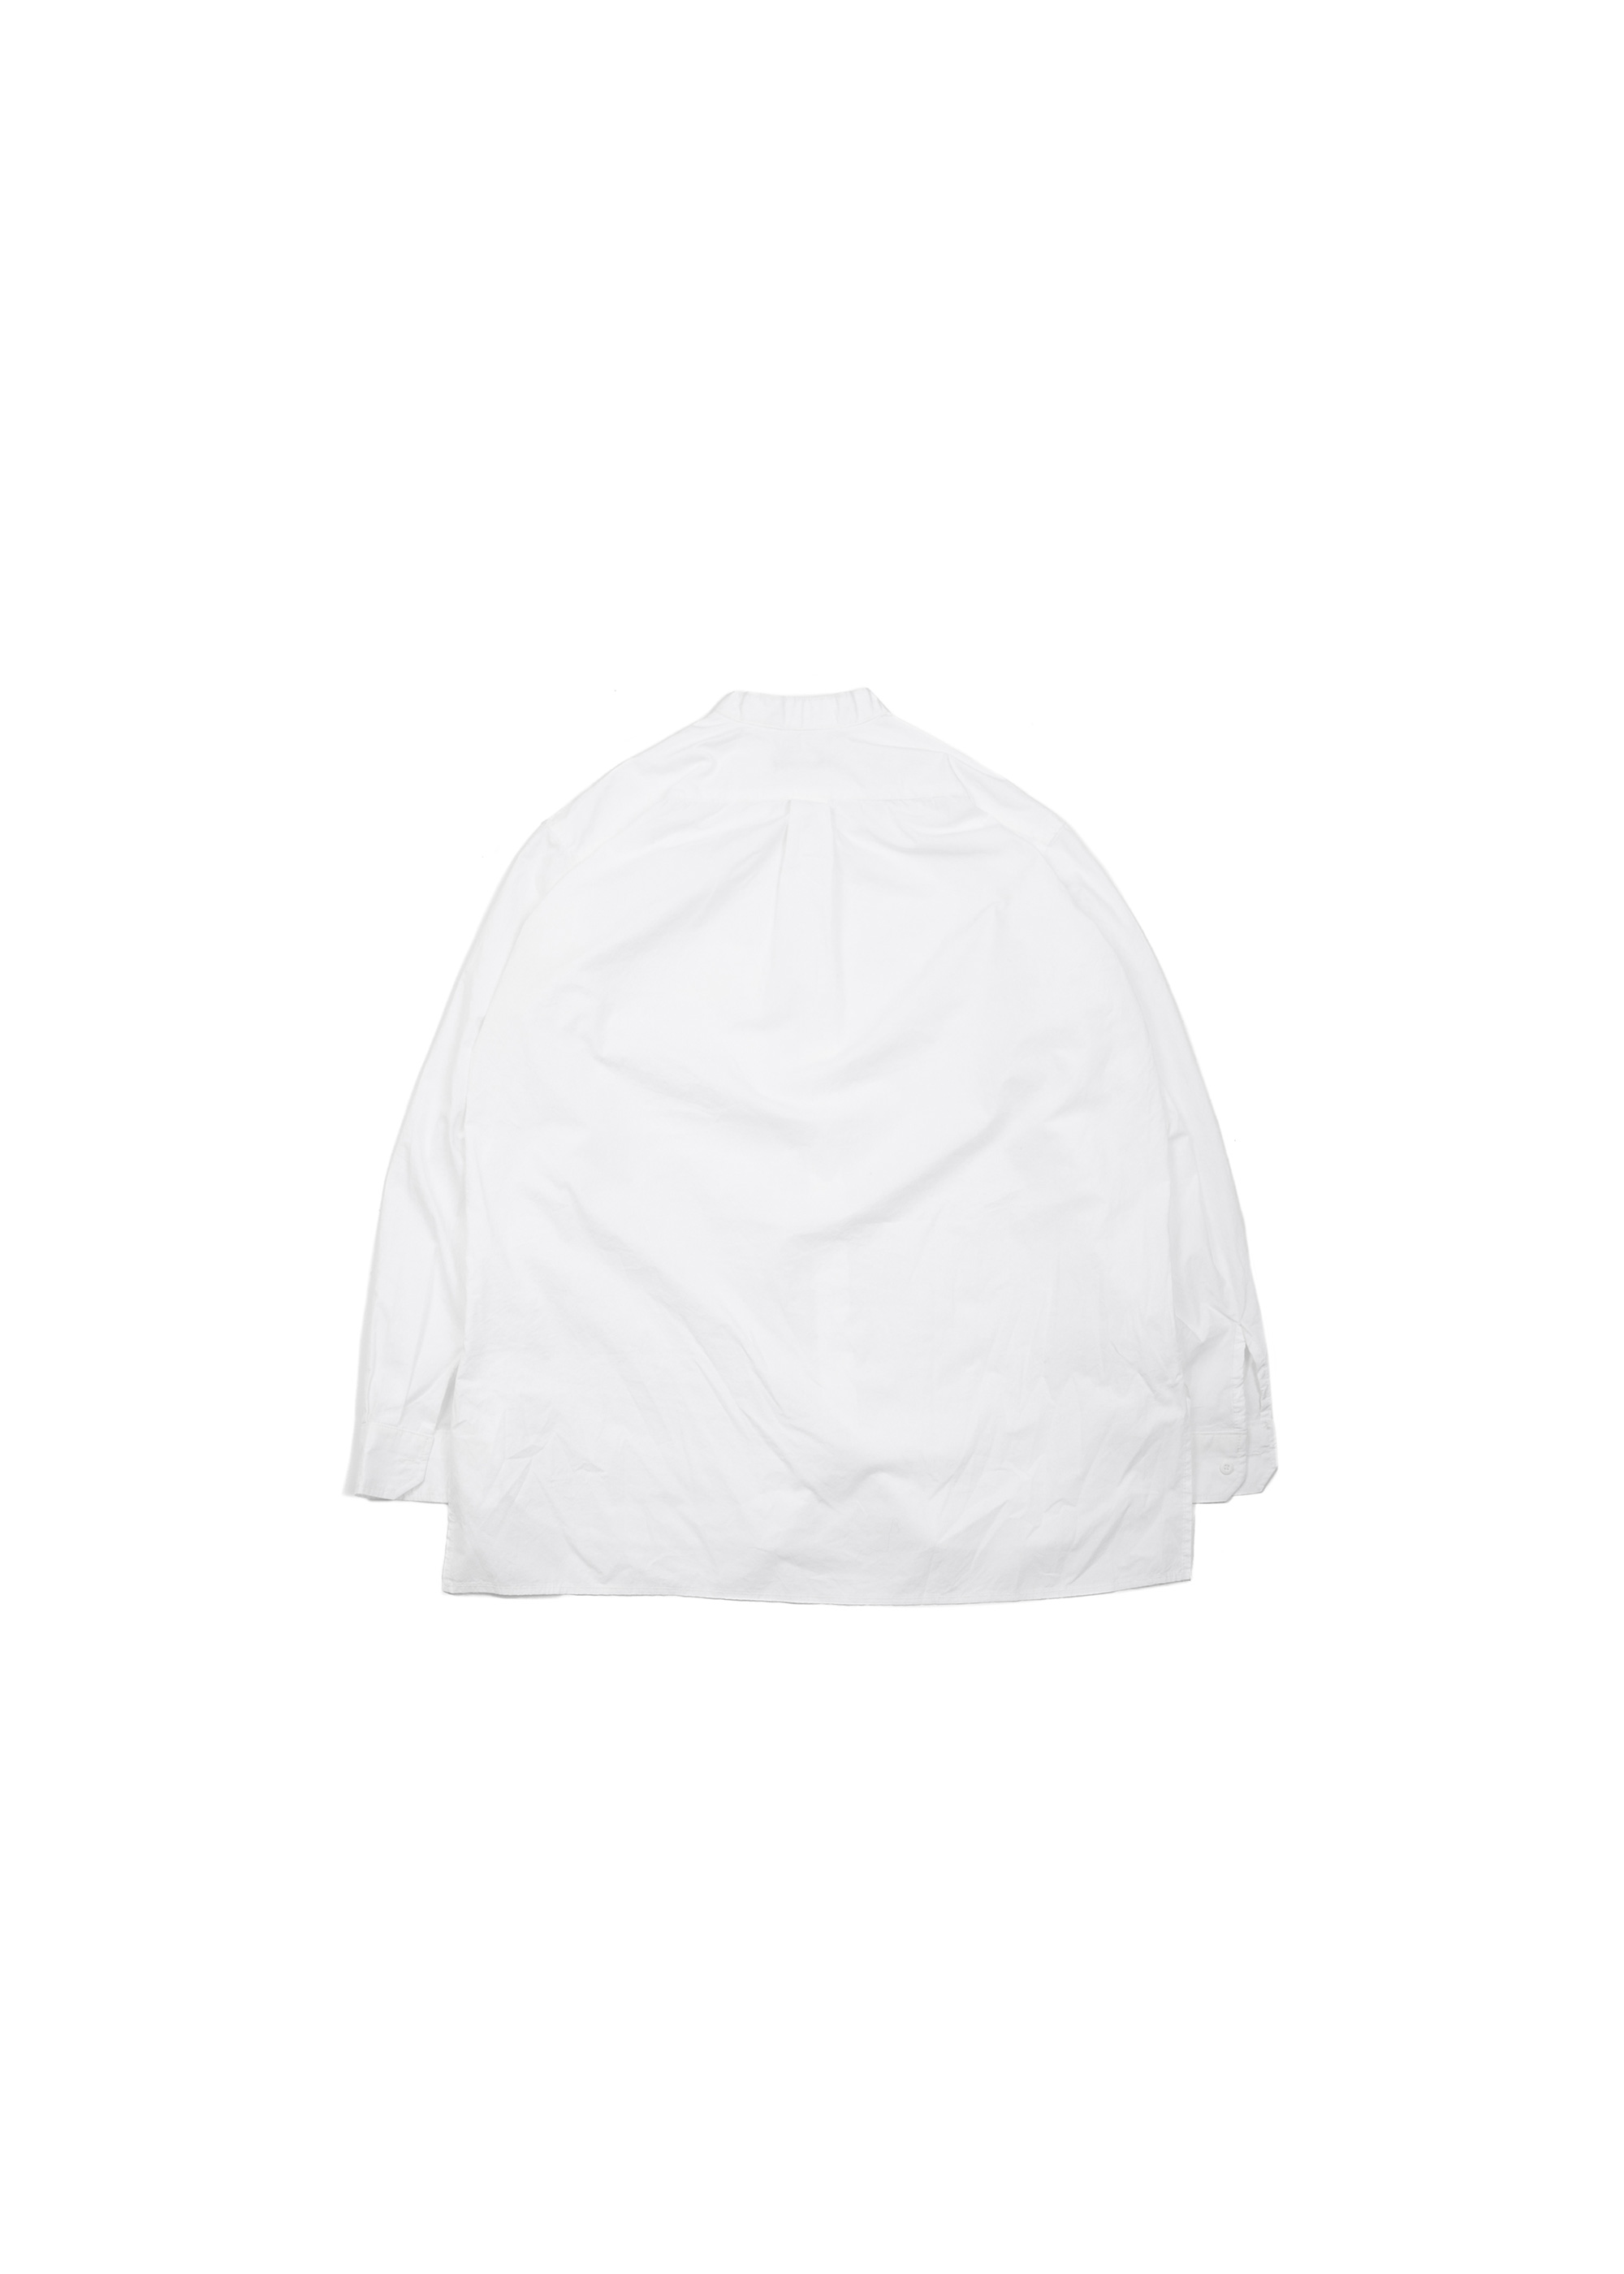 Henly Neck Over Shirts - white